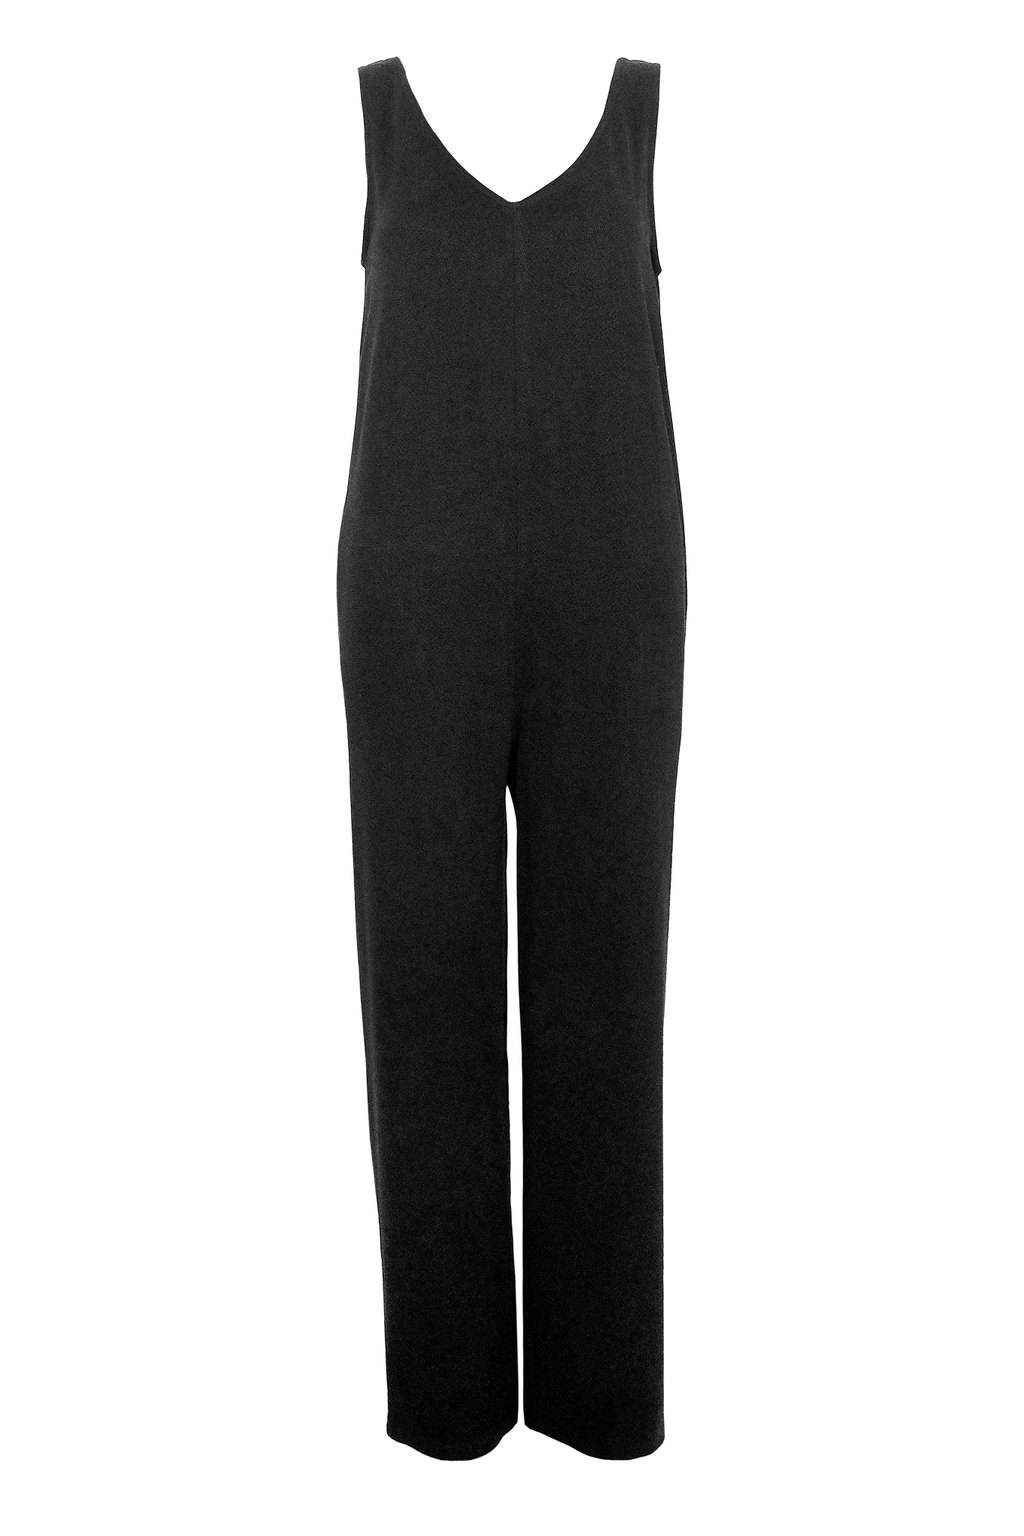 Tencel Jumpsuit - Black Texture